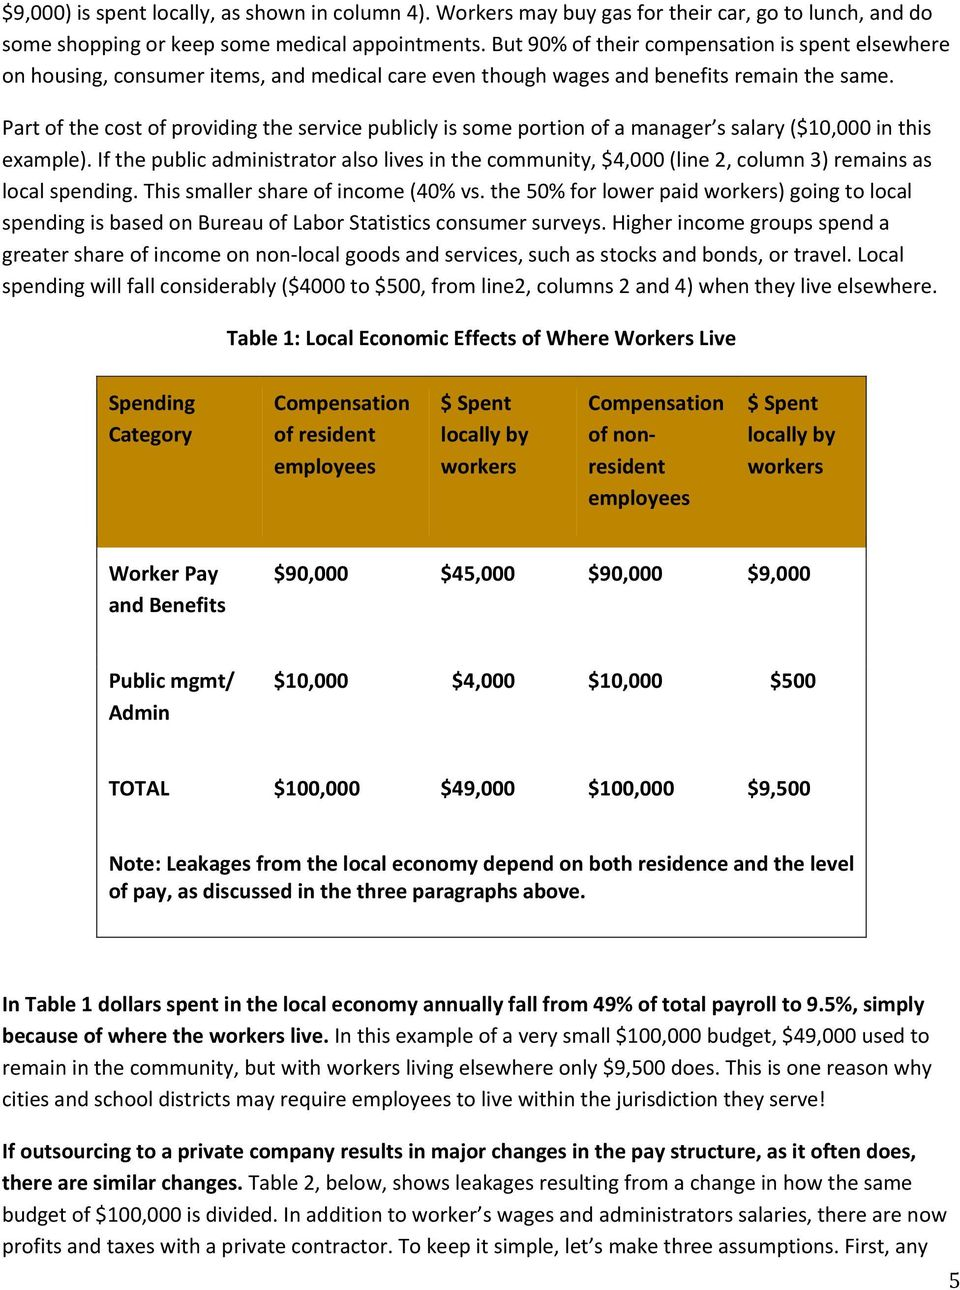 Part of the cost of providing the service publicly is some portion of a manager s salary ($10,000 in this example).